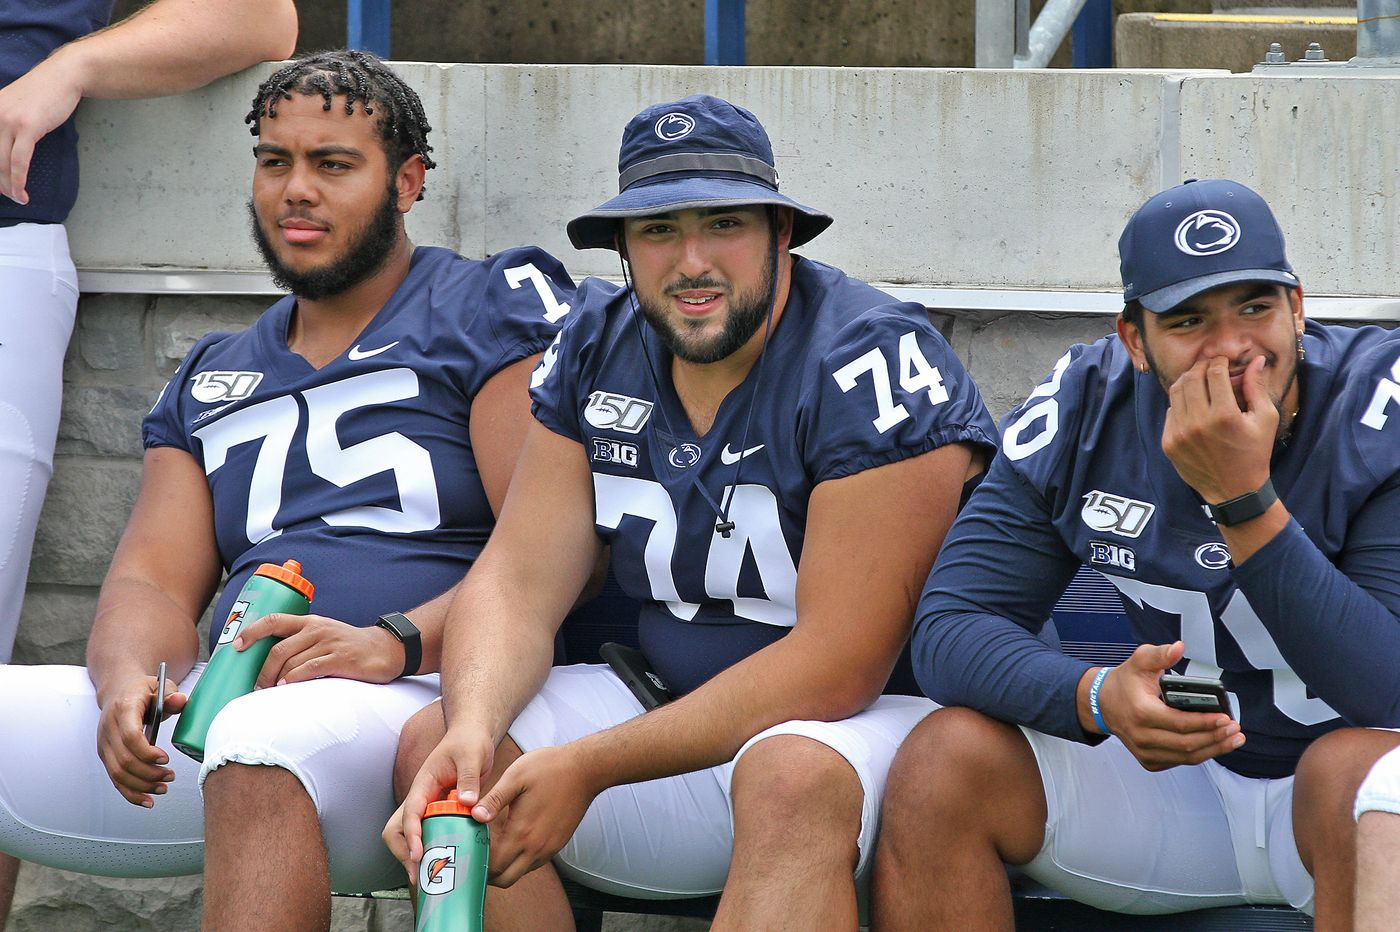 Penn State braces for different faces on the offensive line